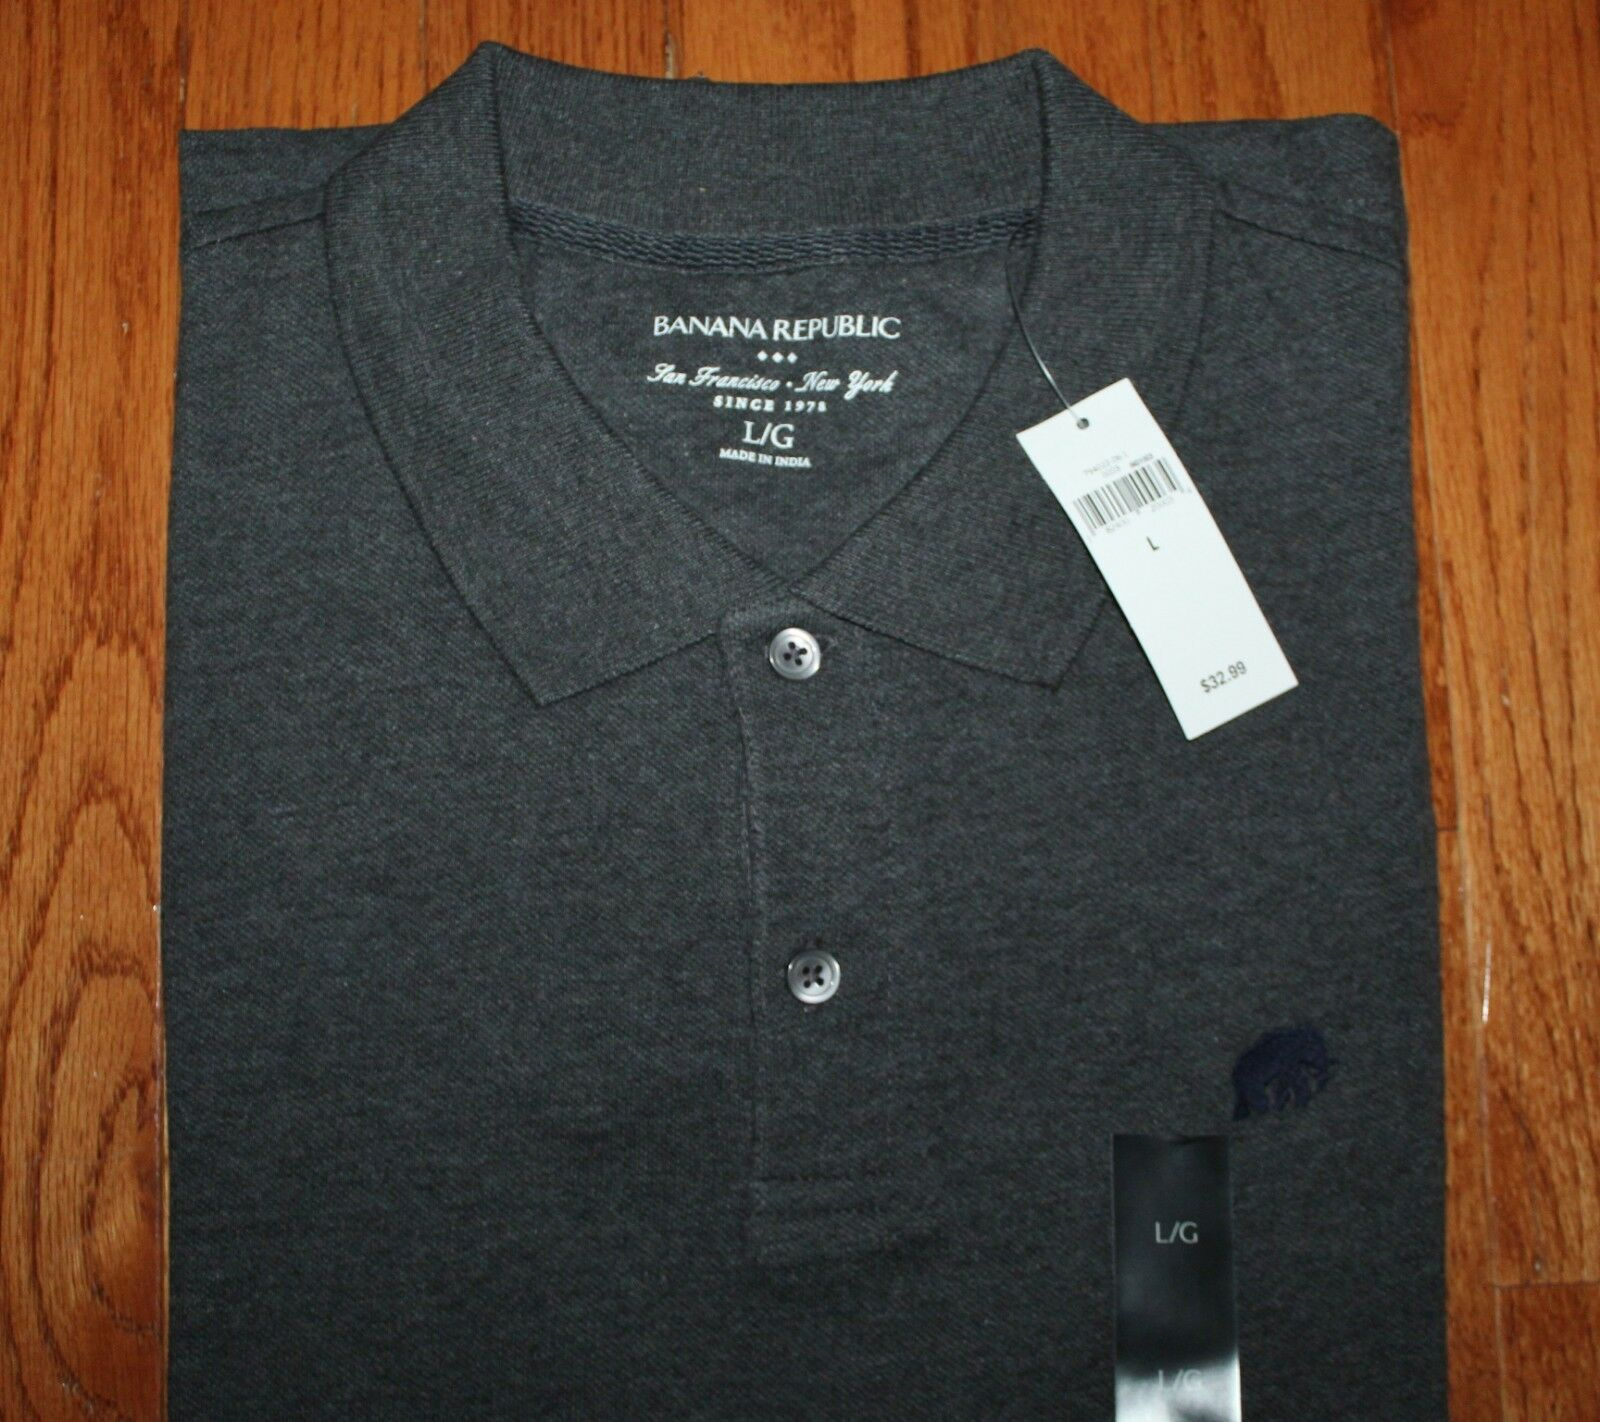 1d8c28143 NWT NEW Mens Banana Republic Pique Polo Shirt Elephant Logo Choice of 16  Colors Charcoal Heather